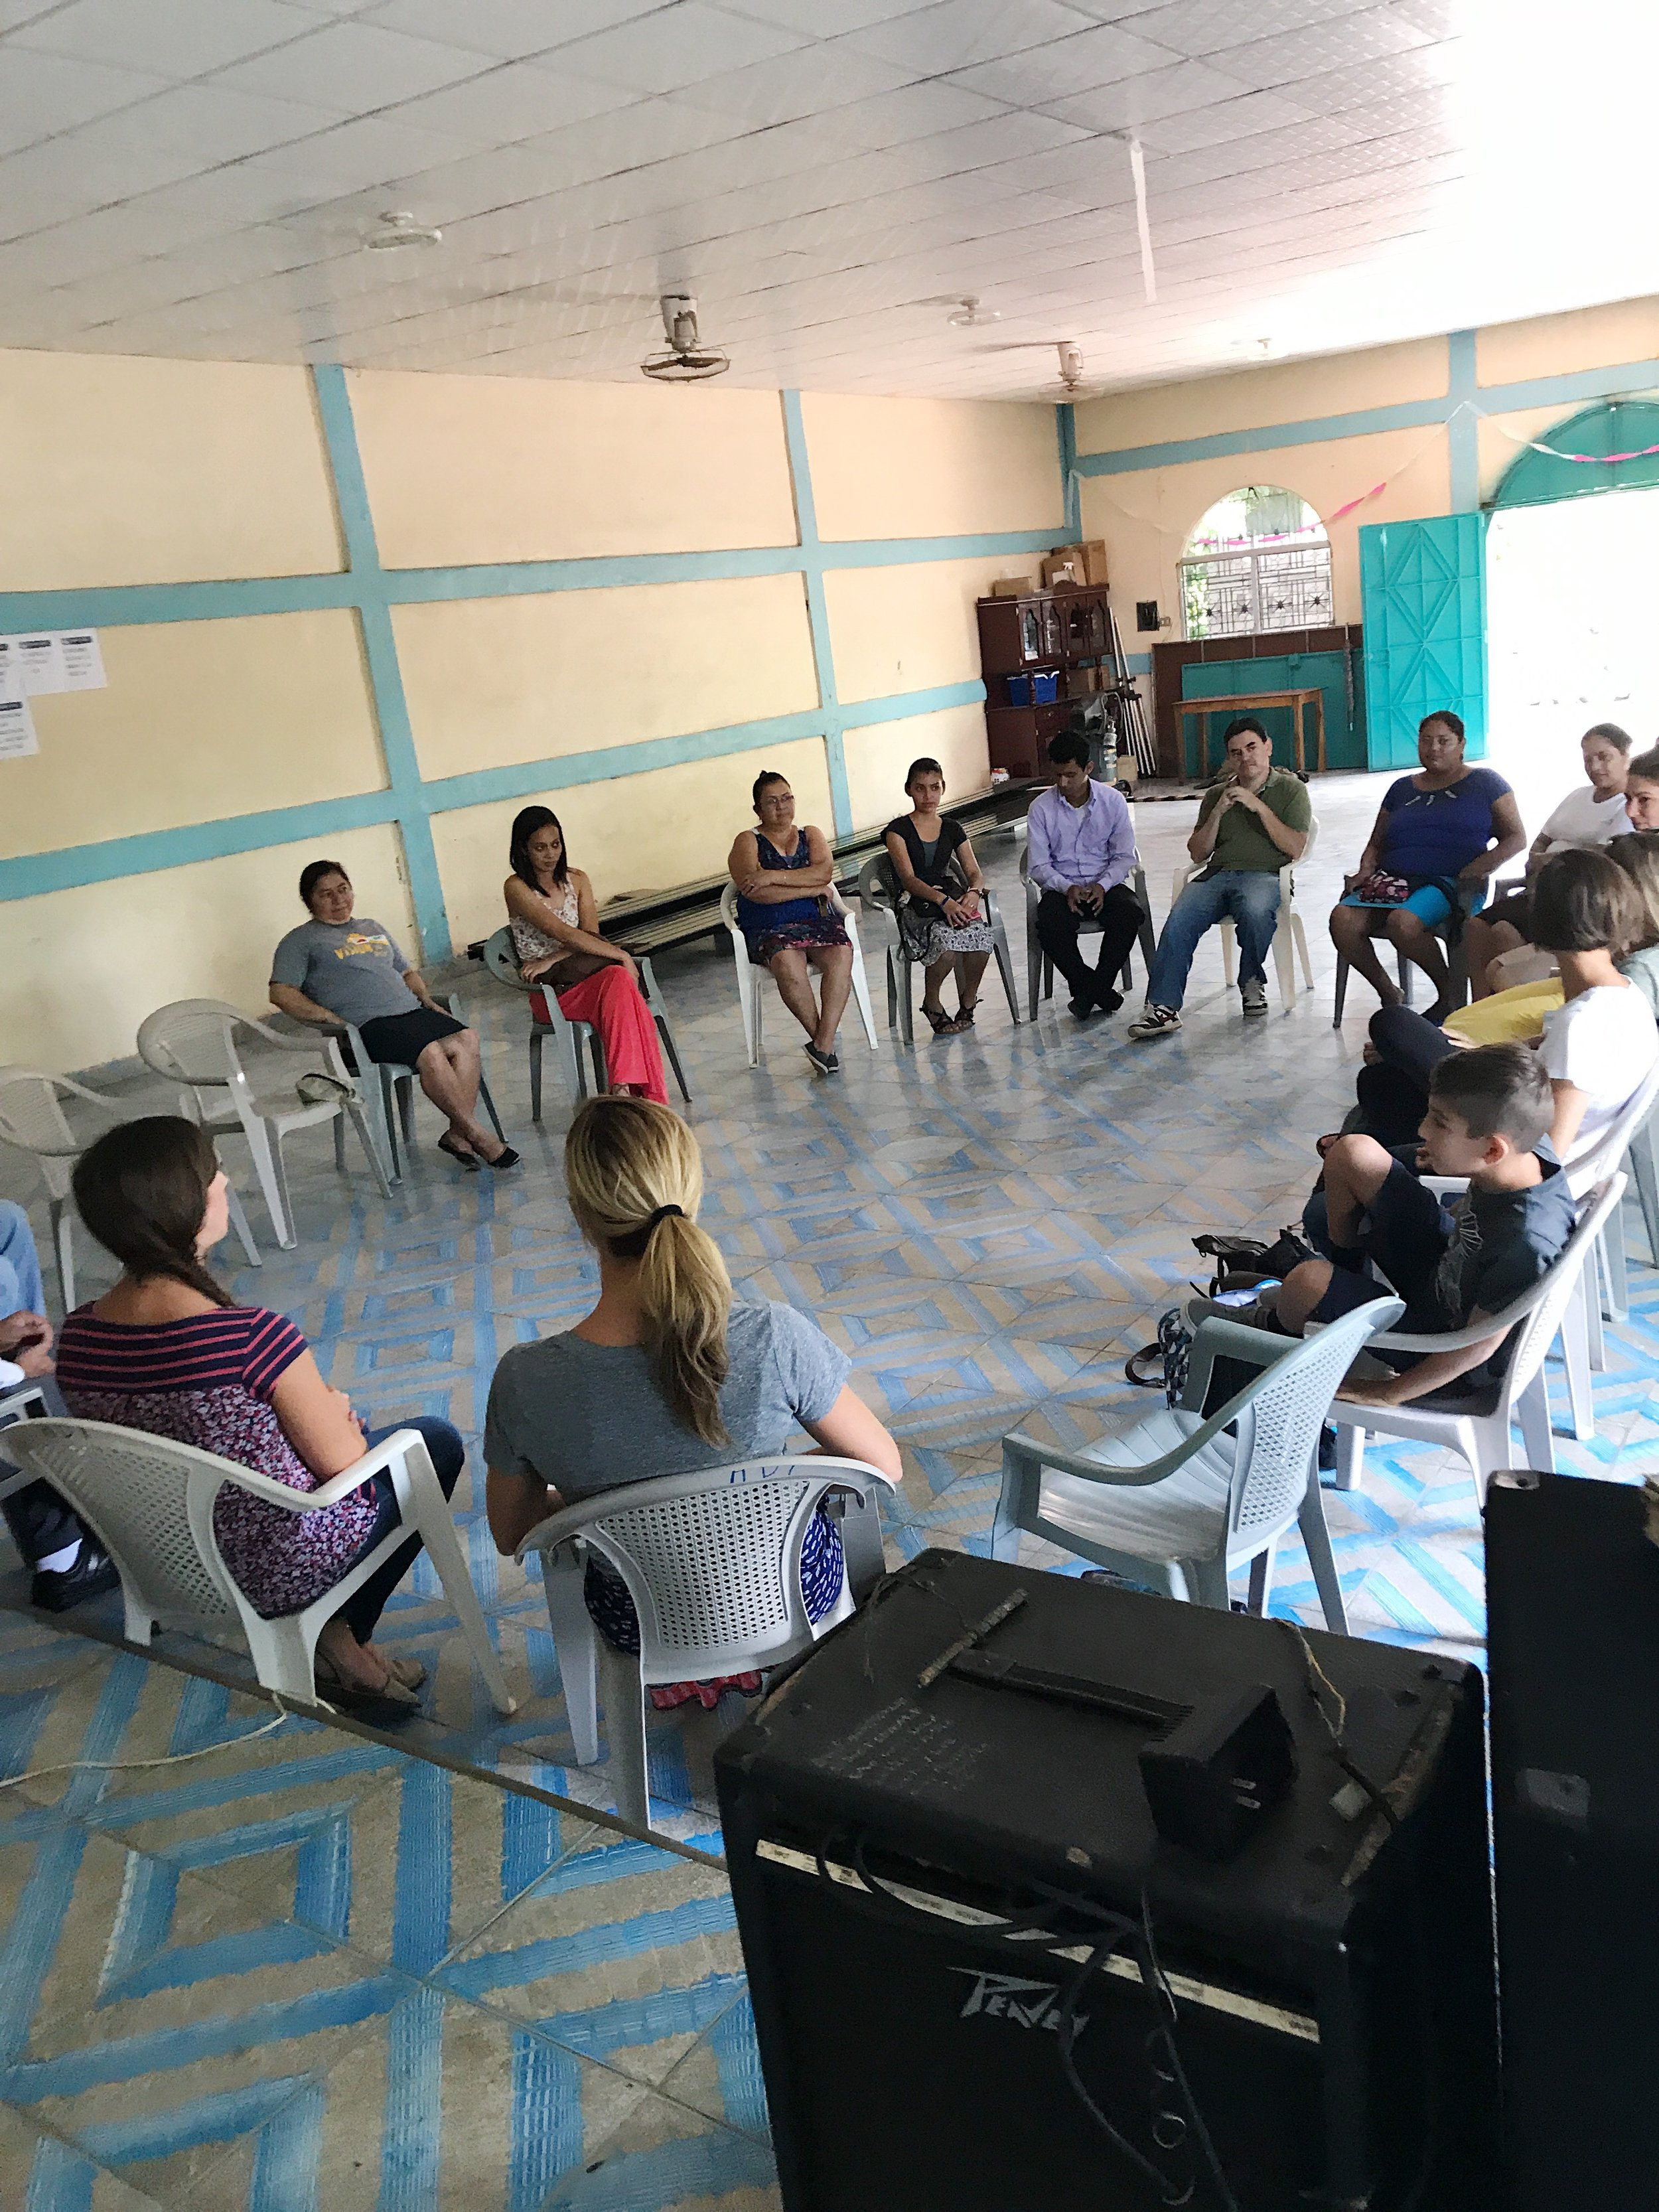 Meeting with church and community leaders working on a water project in Torola,El Salvador.